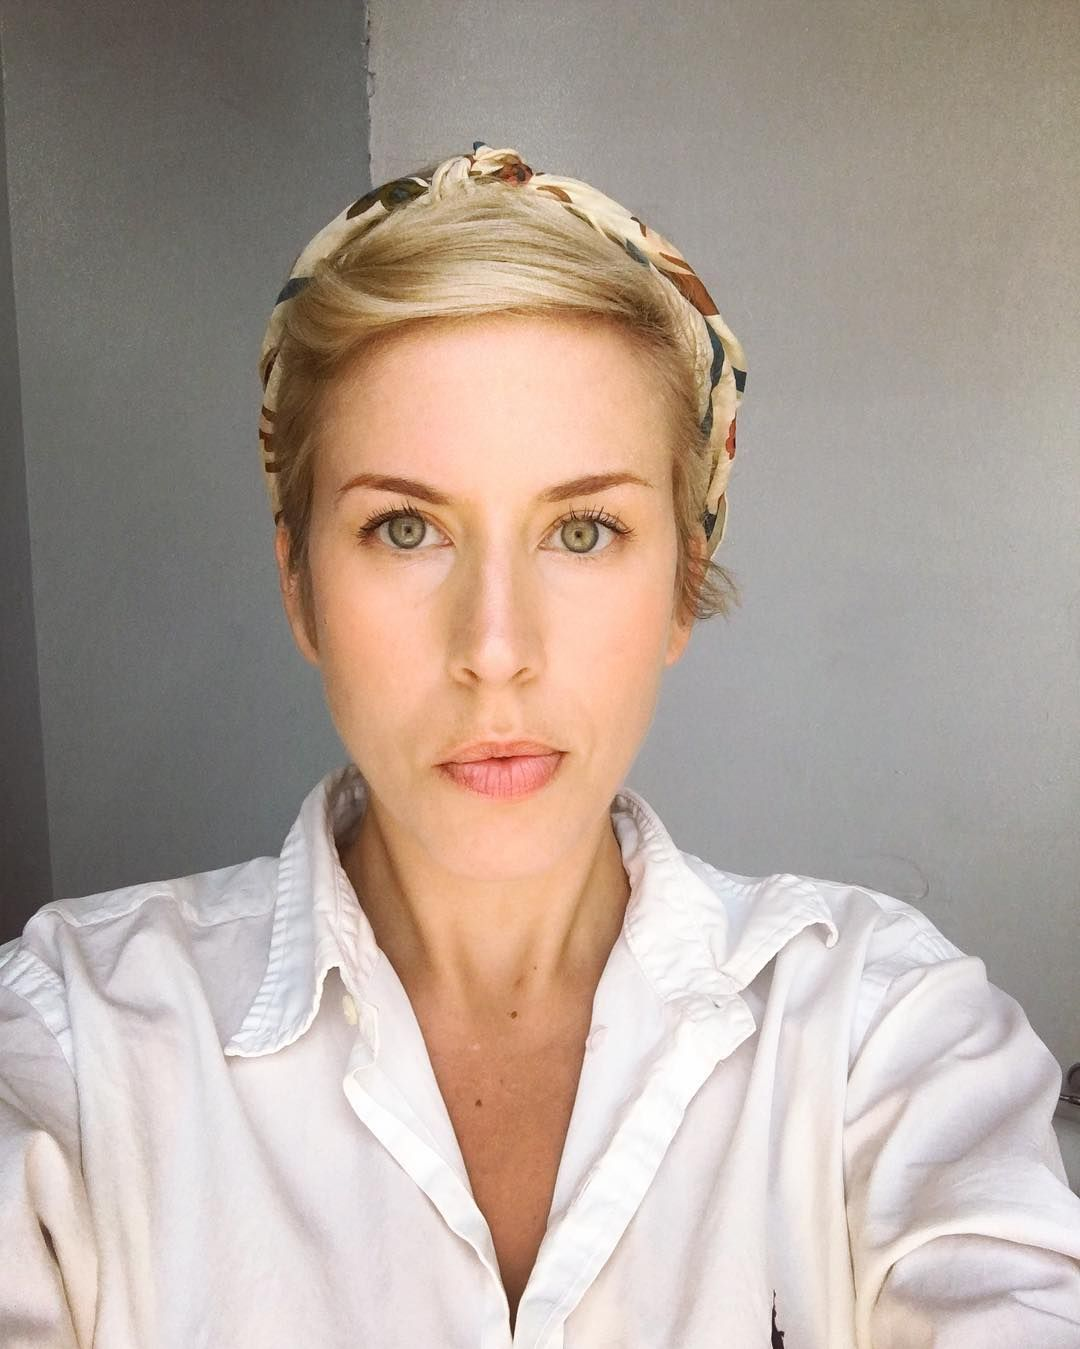 A New Style For an Old Model – How Tall is Erin Napier Hair